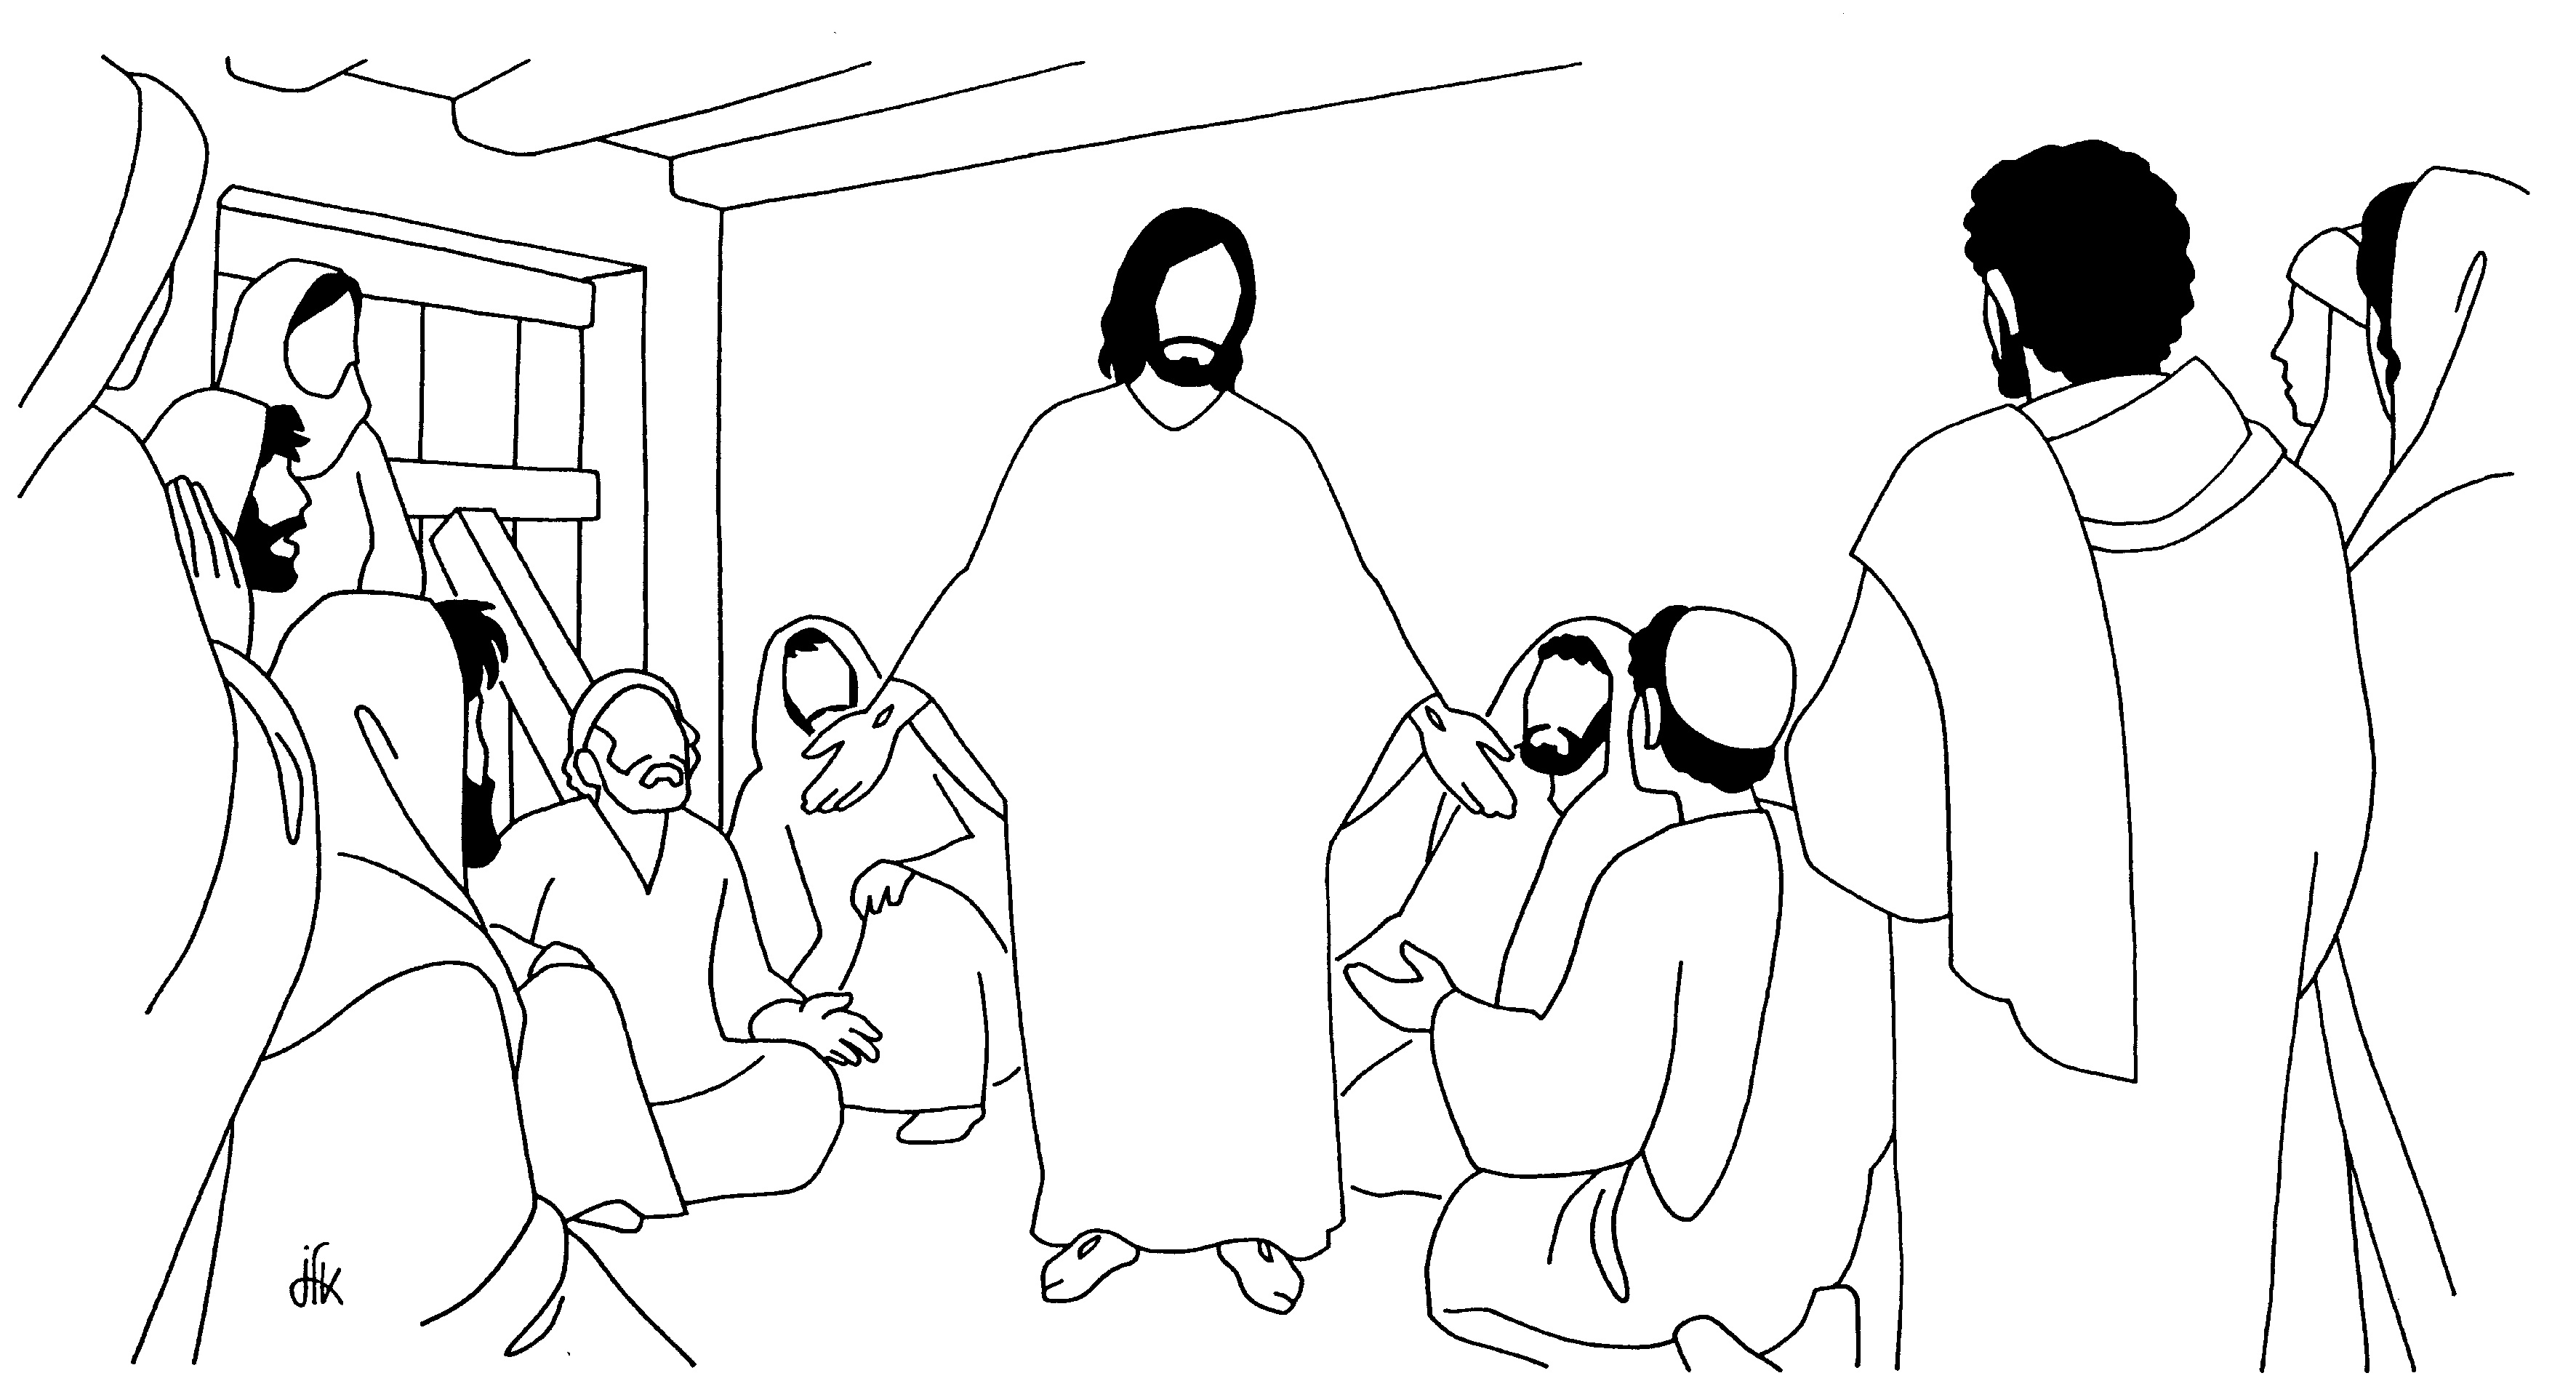 Pin Doubting Thomas Coloring Pages on Pinterest